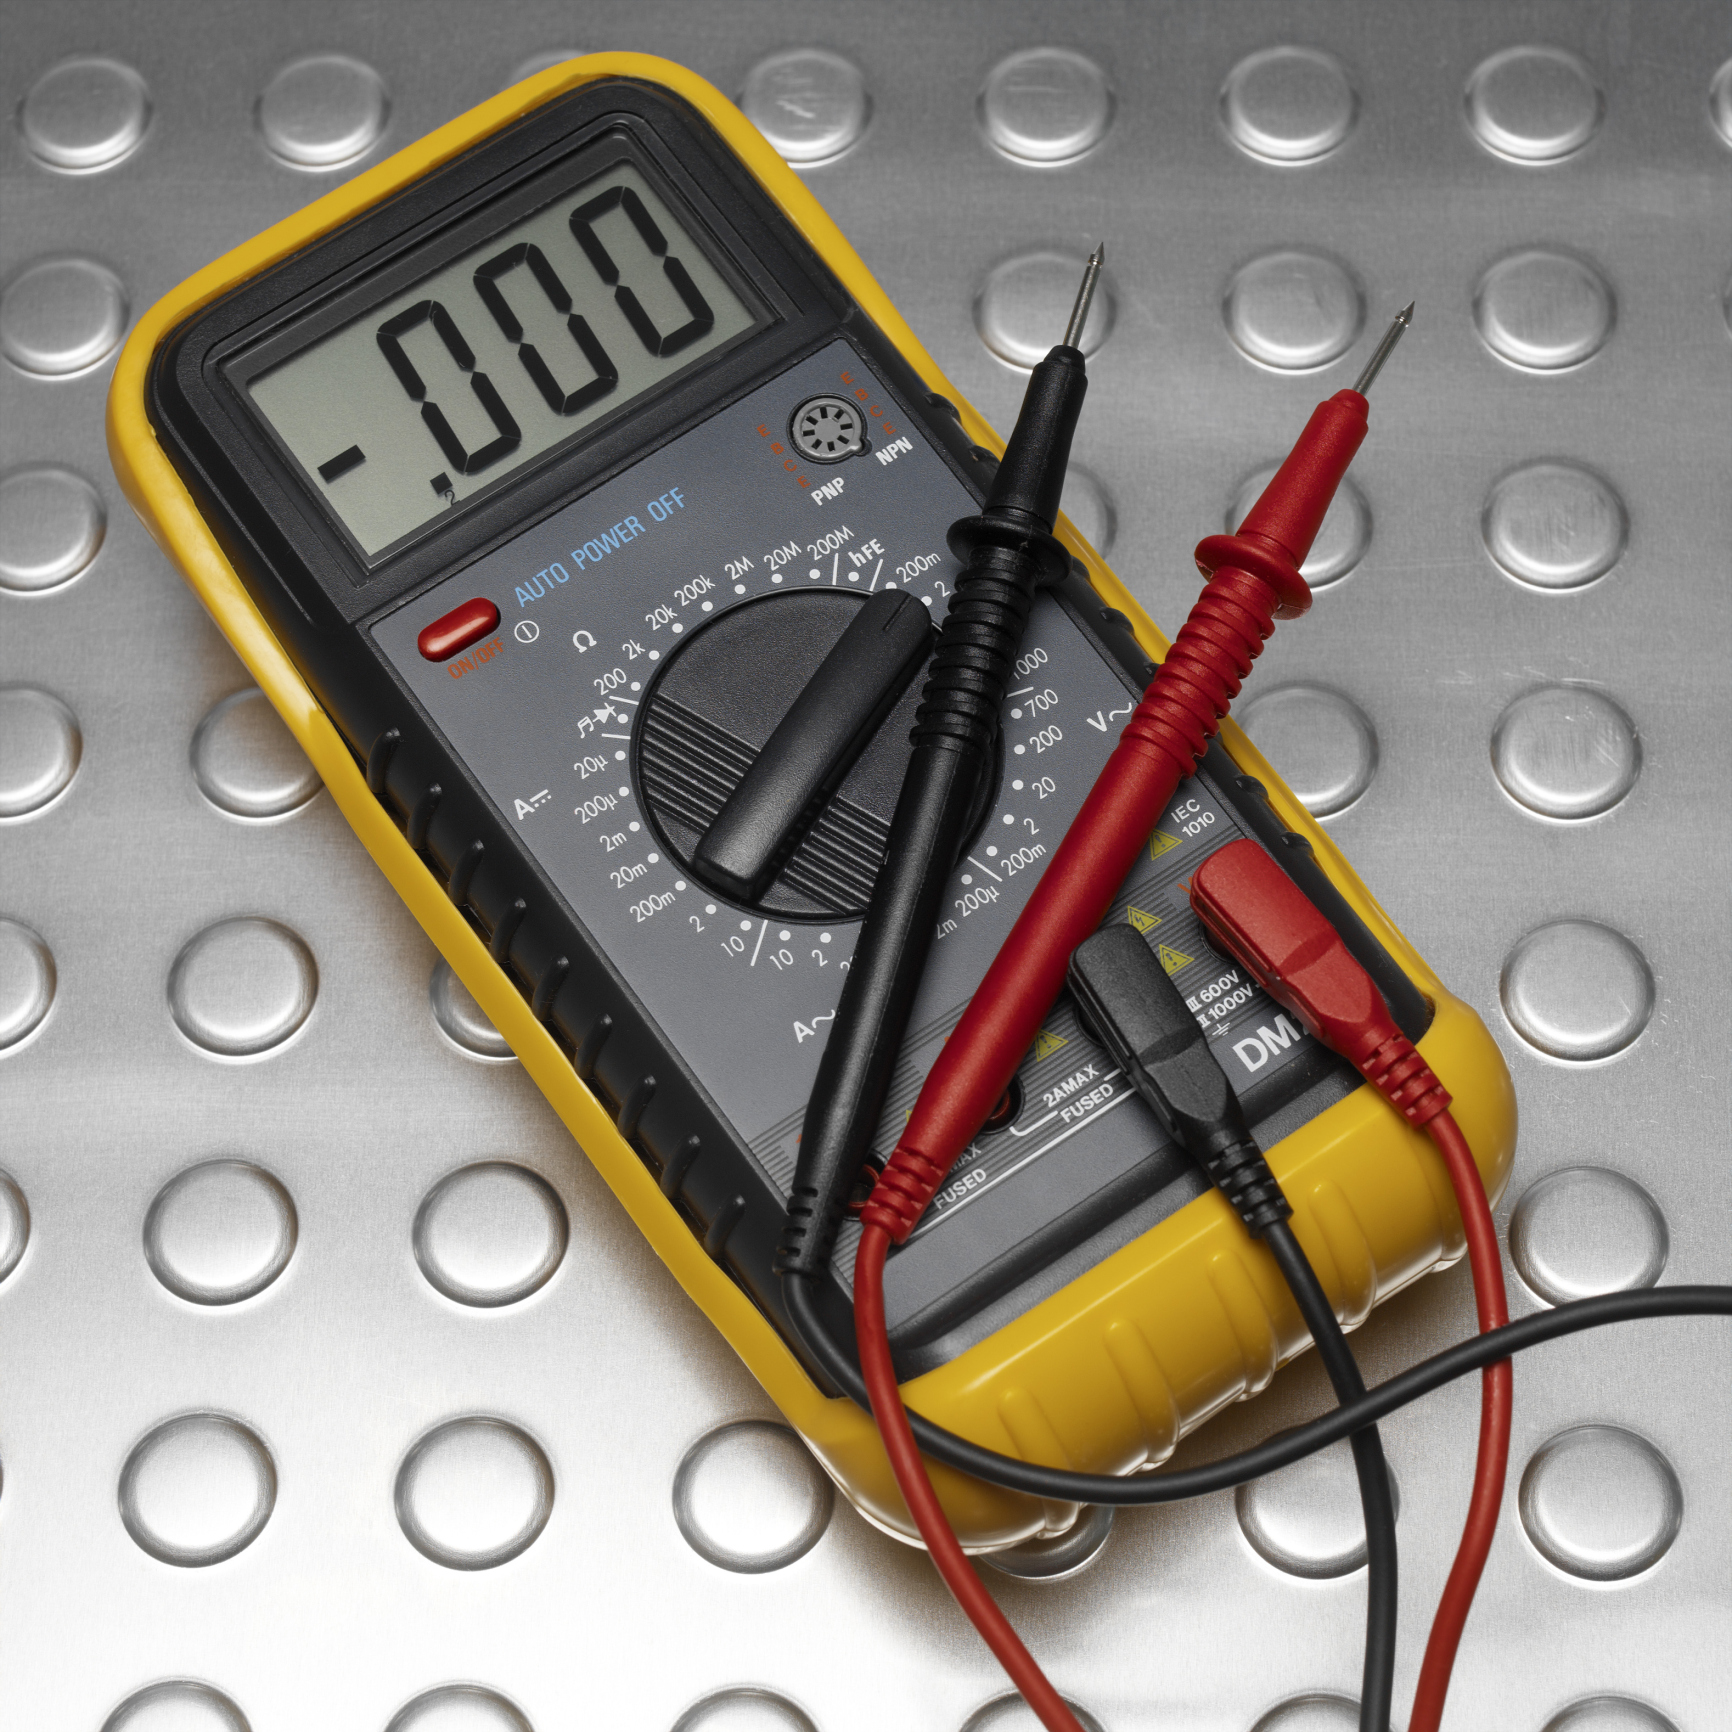 How to Diagnose a Circuit Board With a Bad Transistor